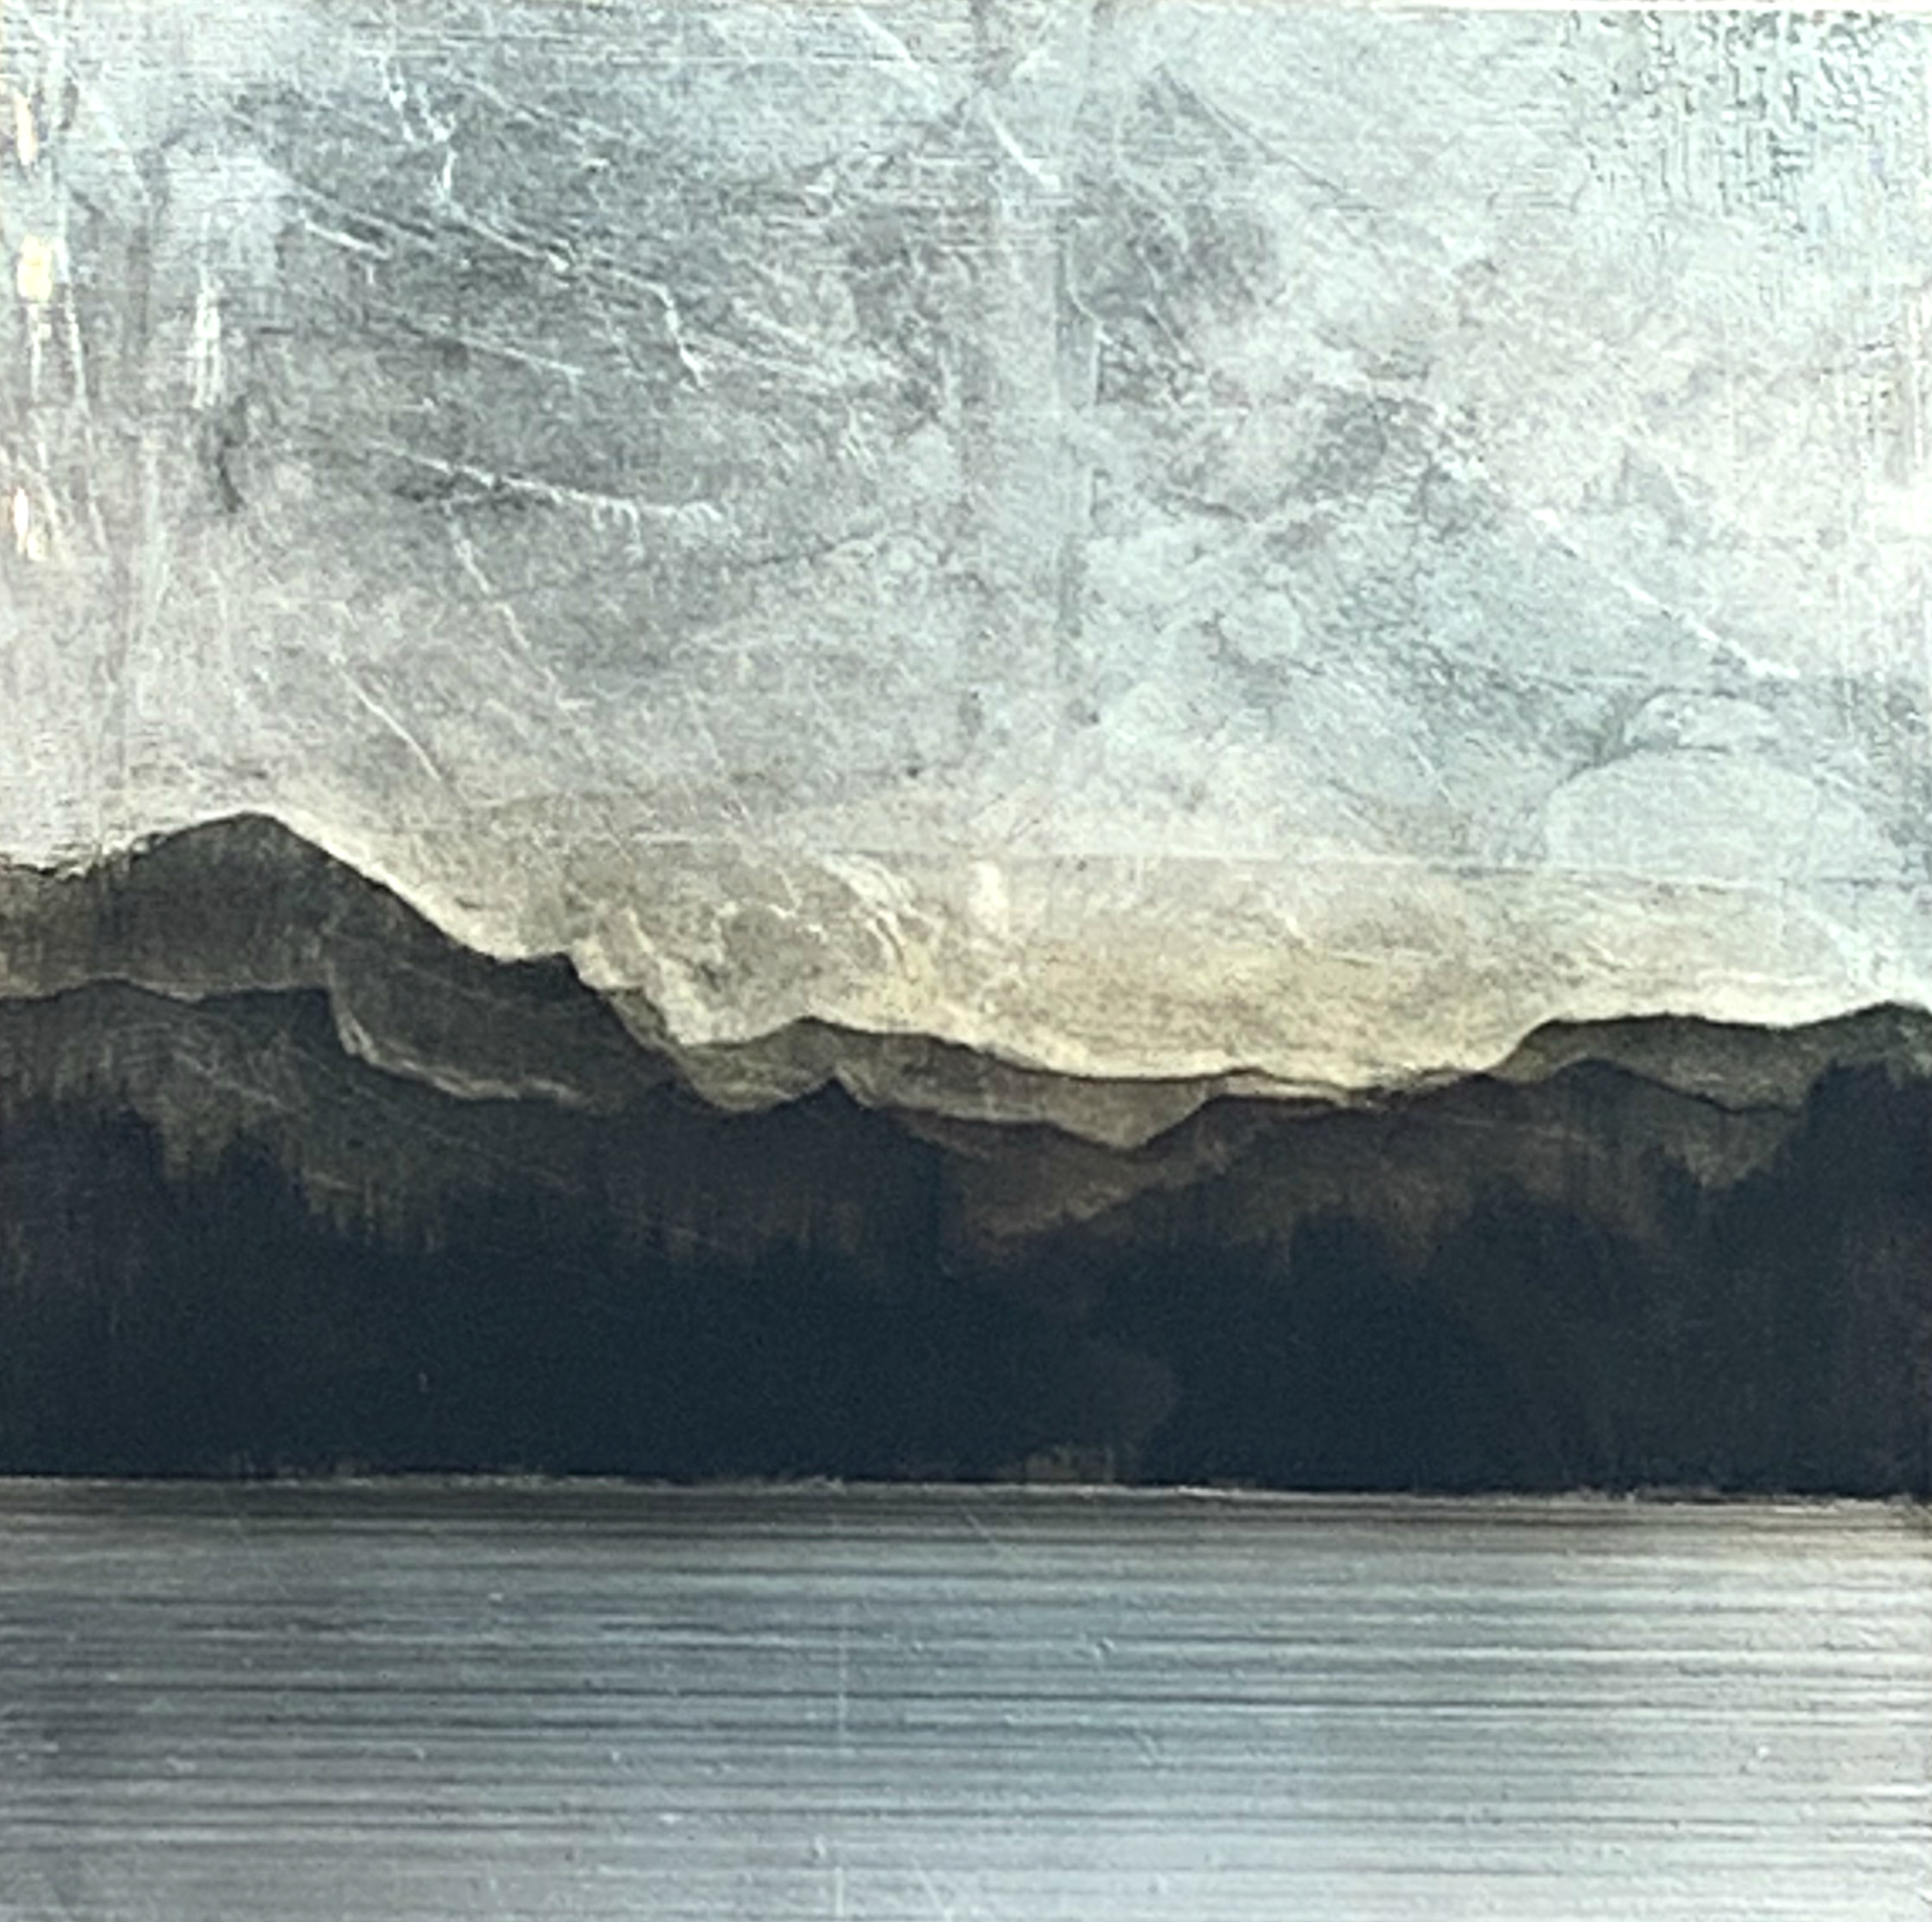 558, mixed media landscape painting by David Graff | Effusion Art Gallery + Cast Glass Studio, Invermere BC